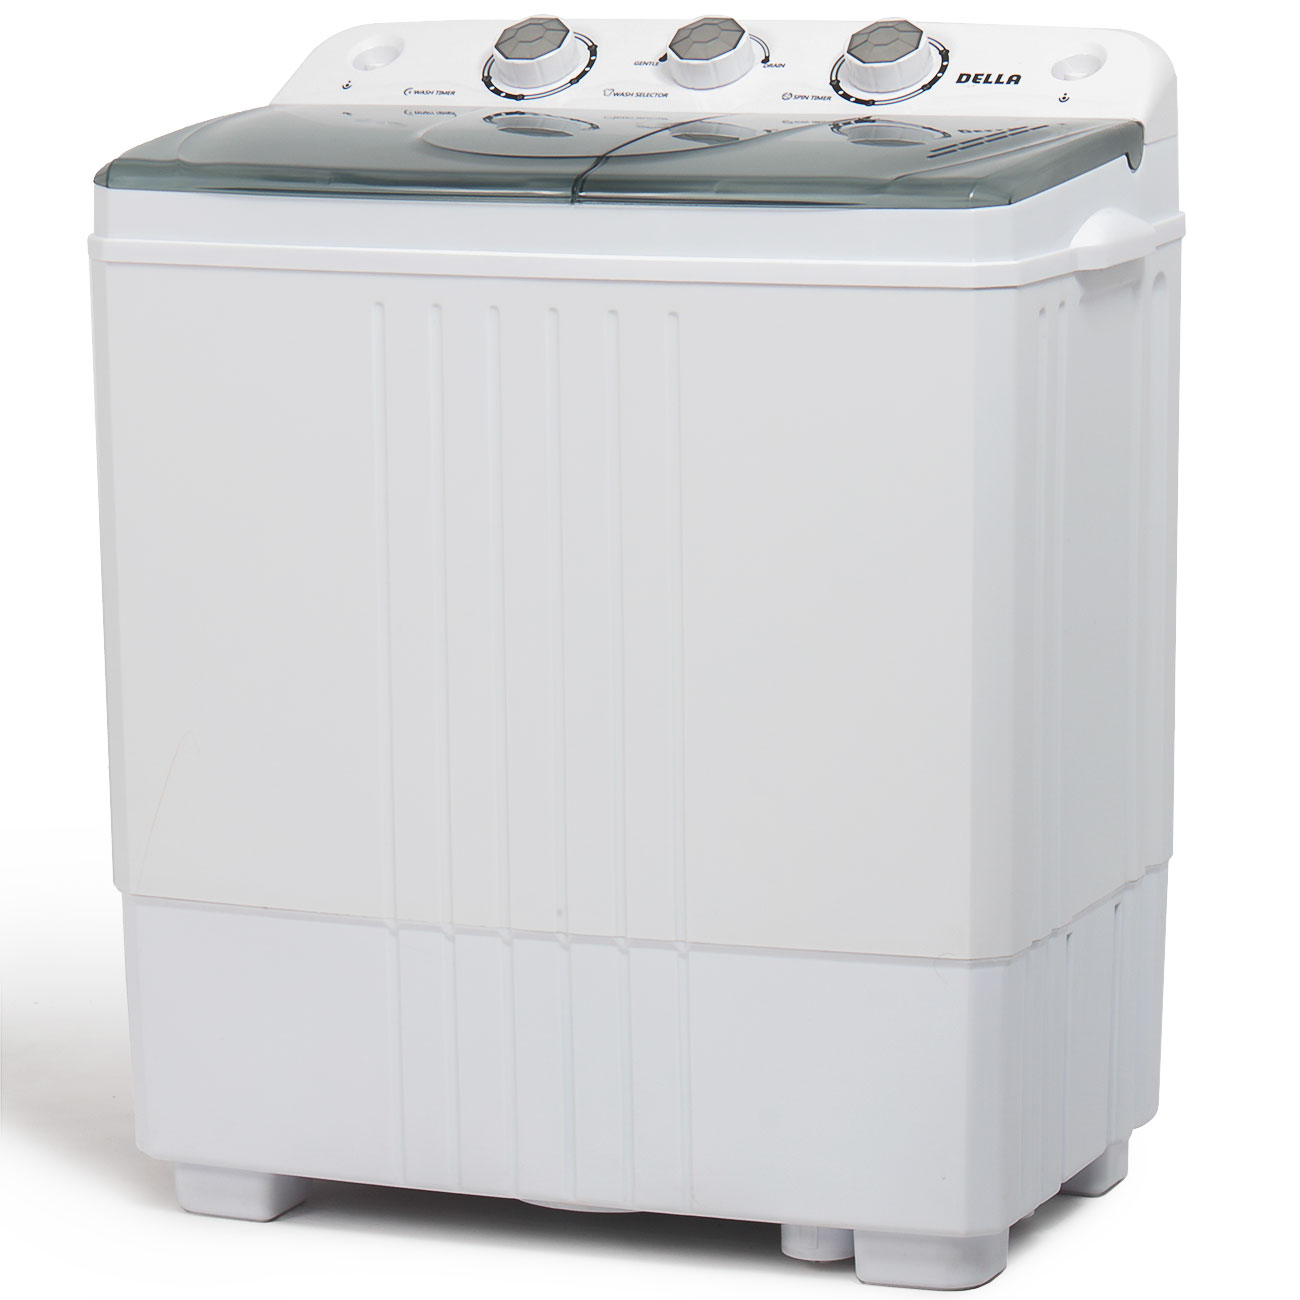 Dual Washing Machine Spin Amp Dryer Twin Tub Portable Rv Top